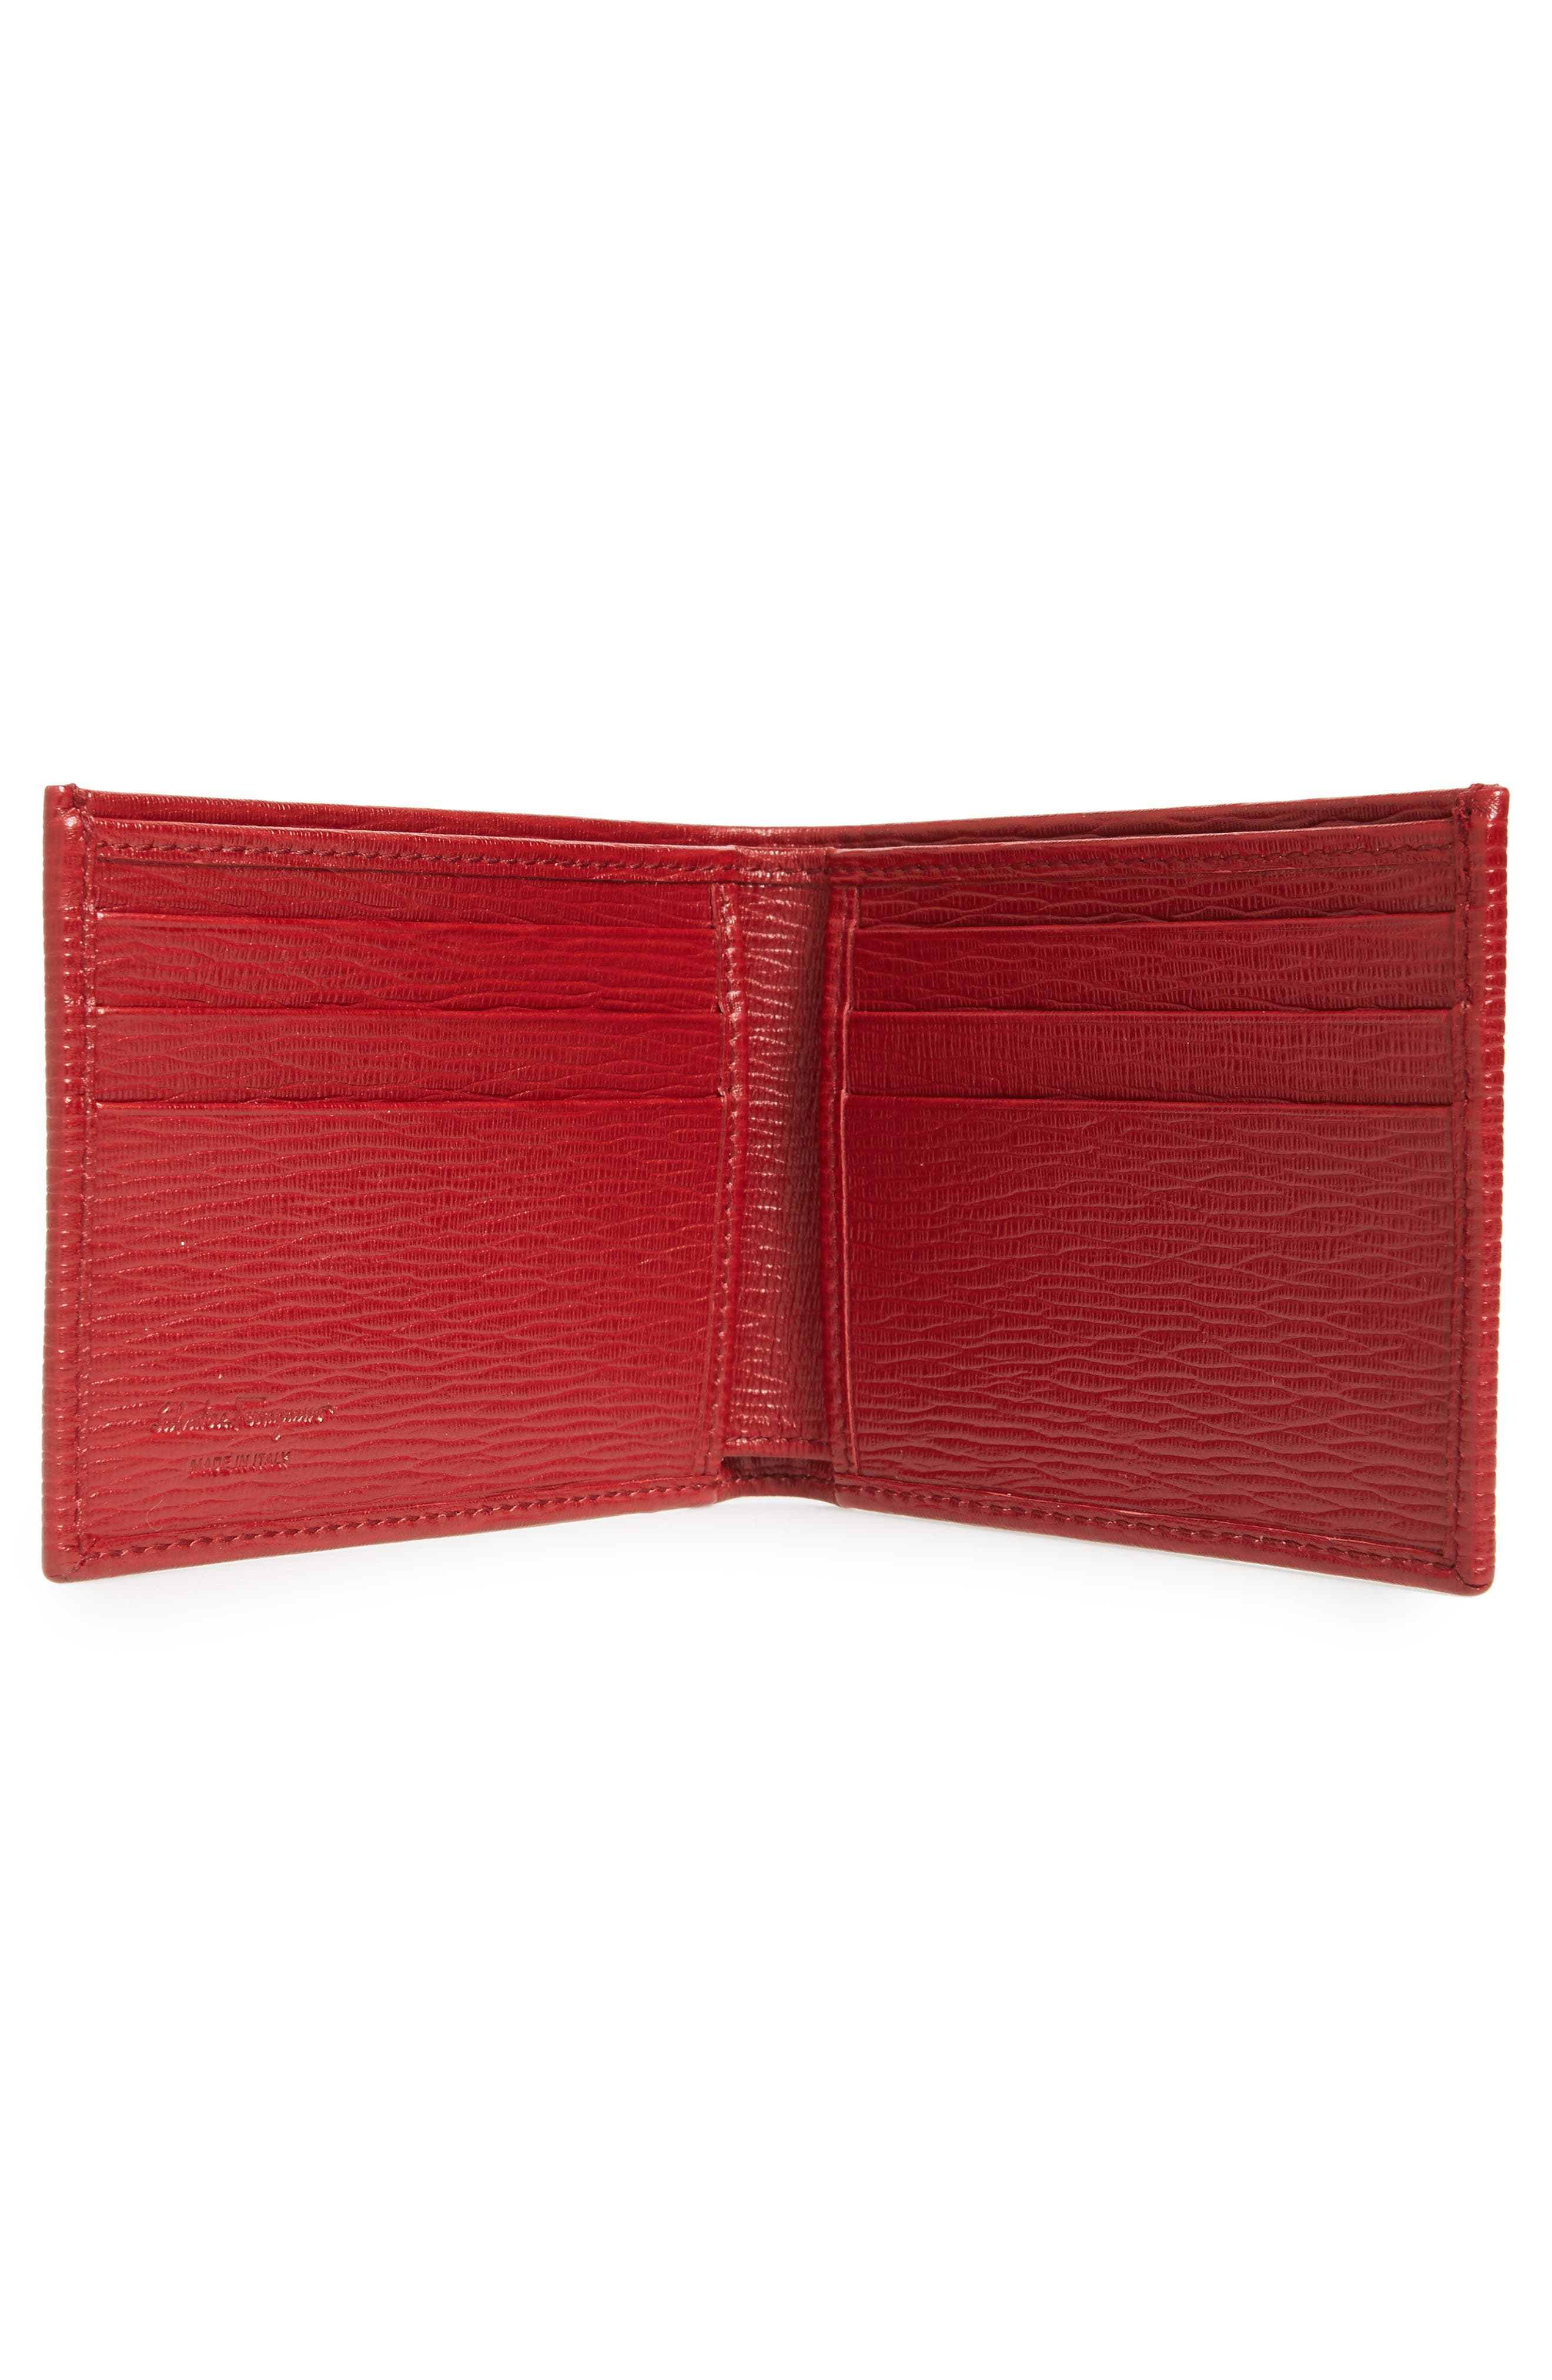 Revival Bifold Leather Wallet,                             Alternate thumbnail 2, color,                             Red